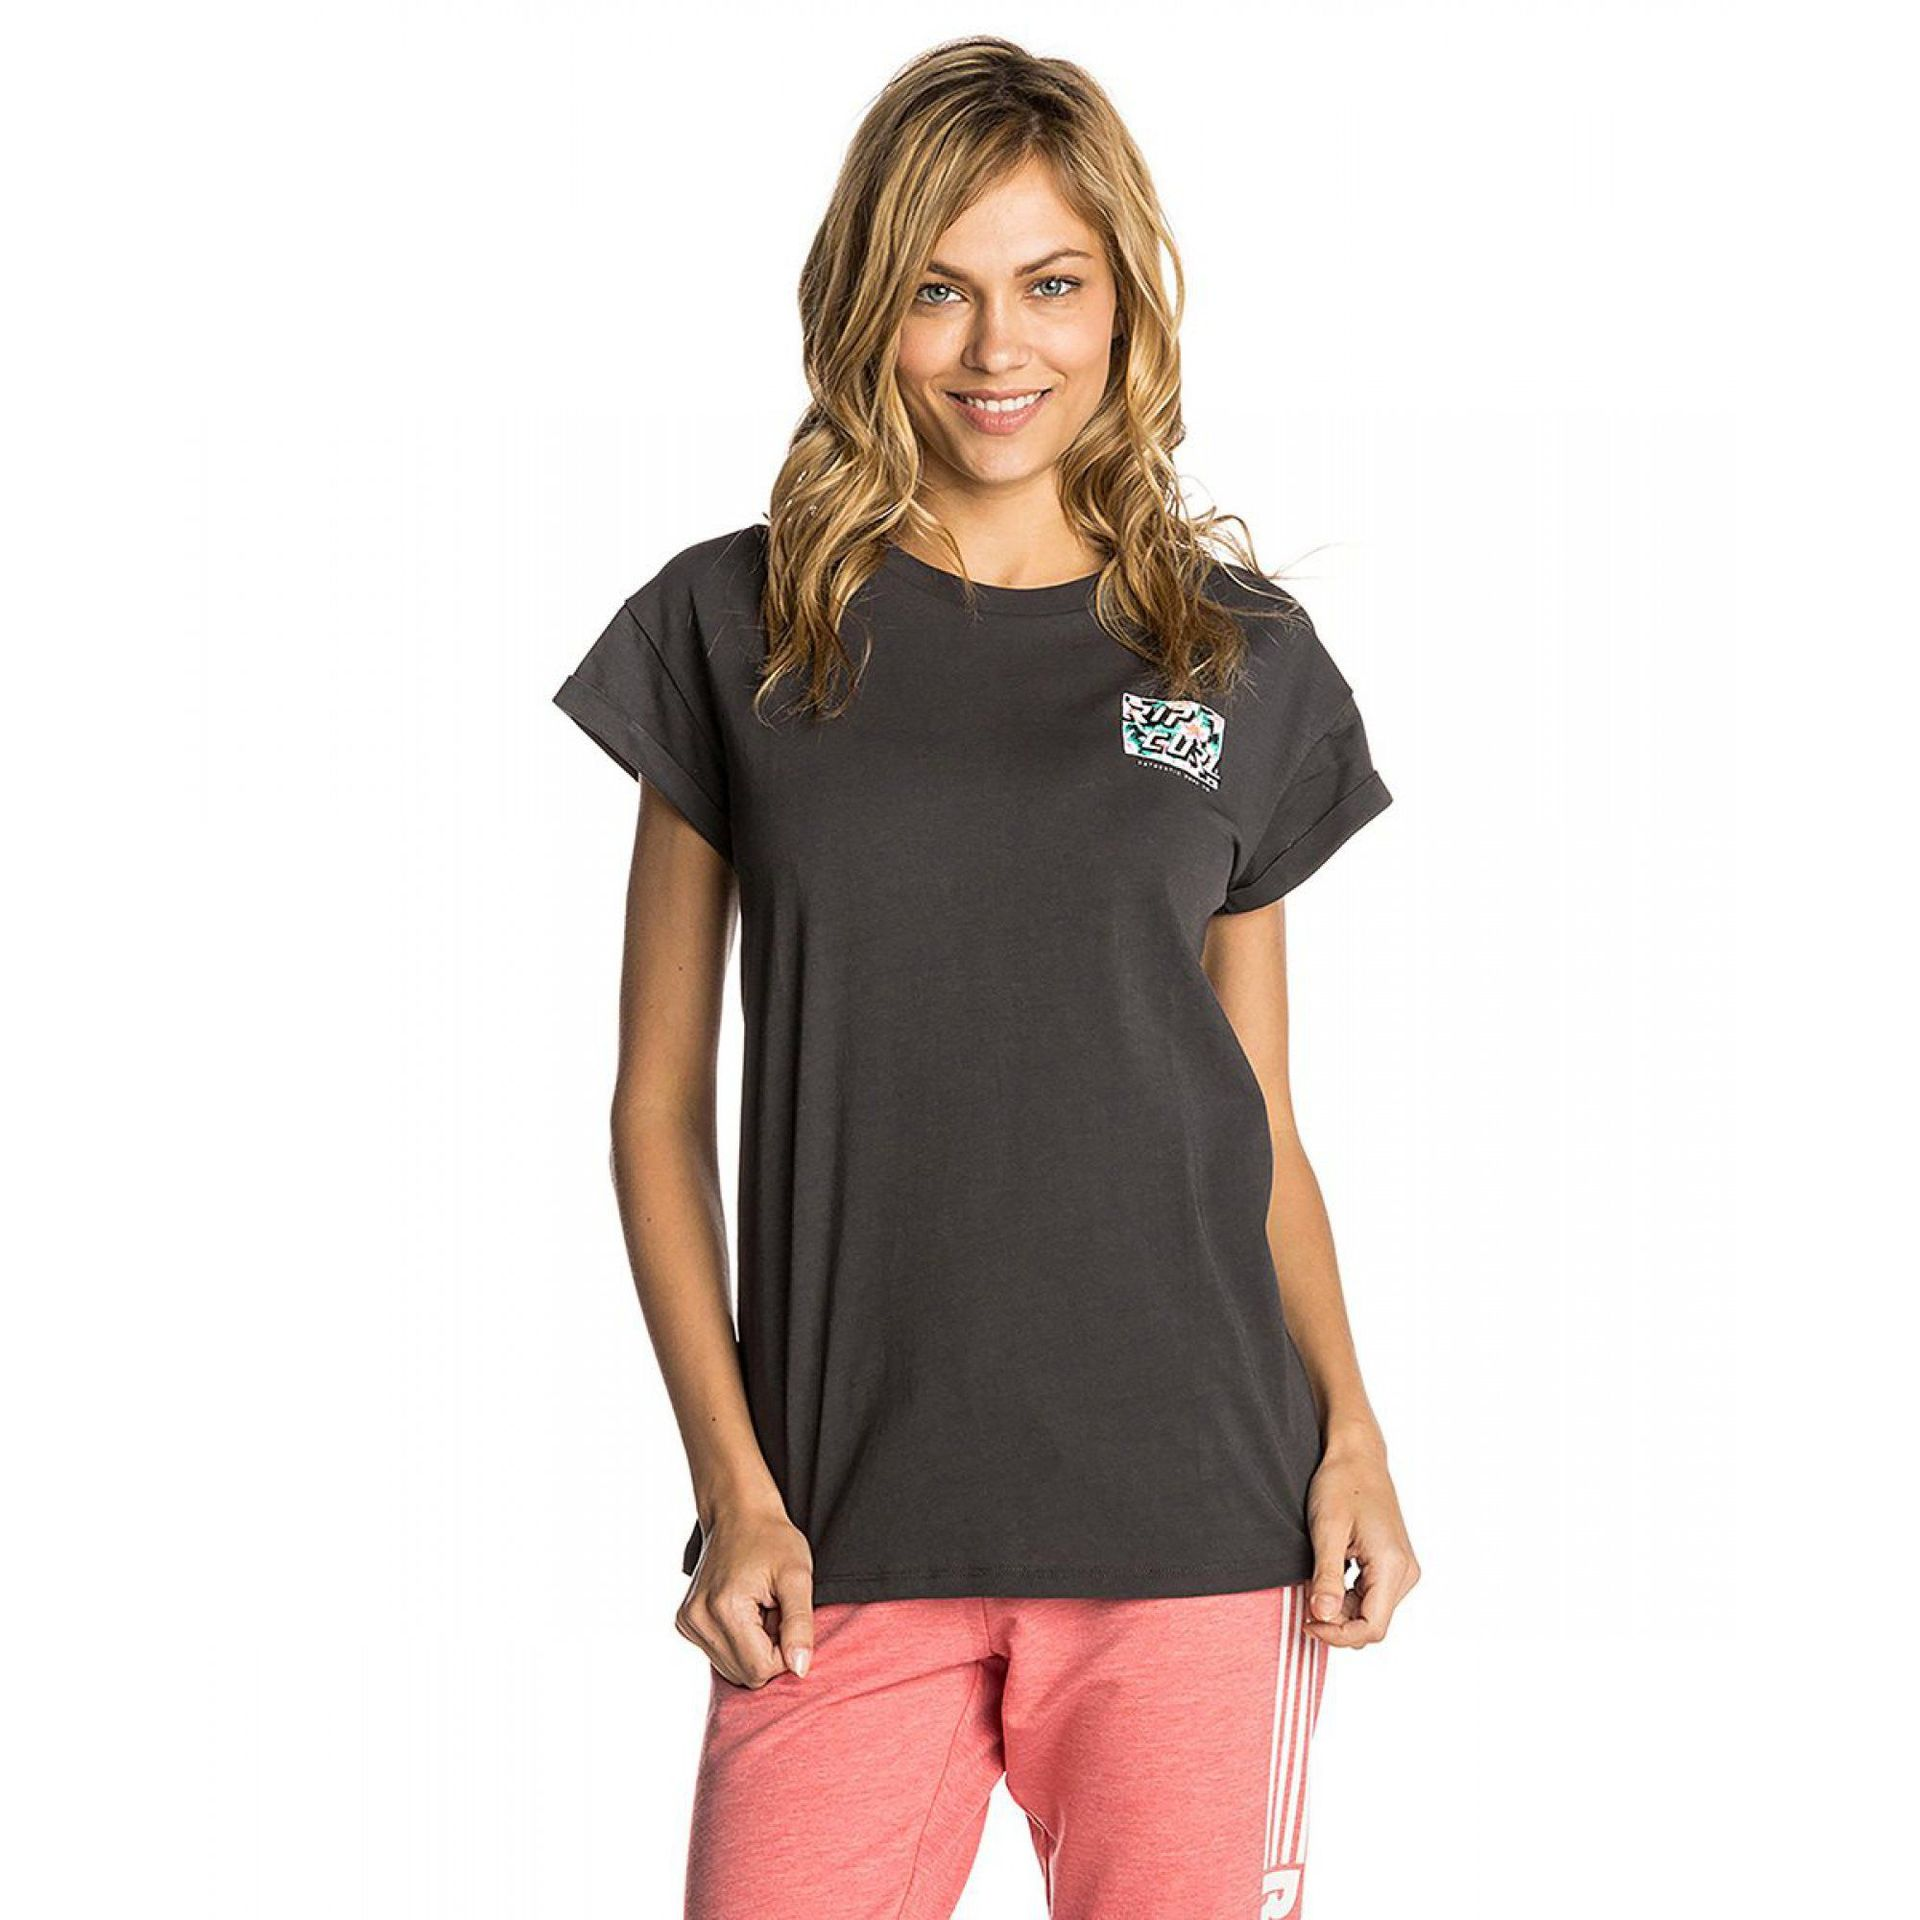 T-SHIRT RIP CURL HOT SHOT GRAY 1